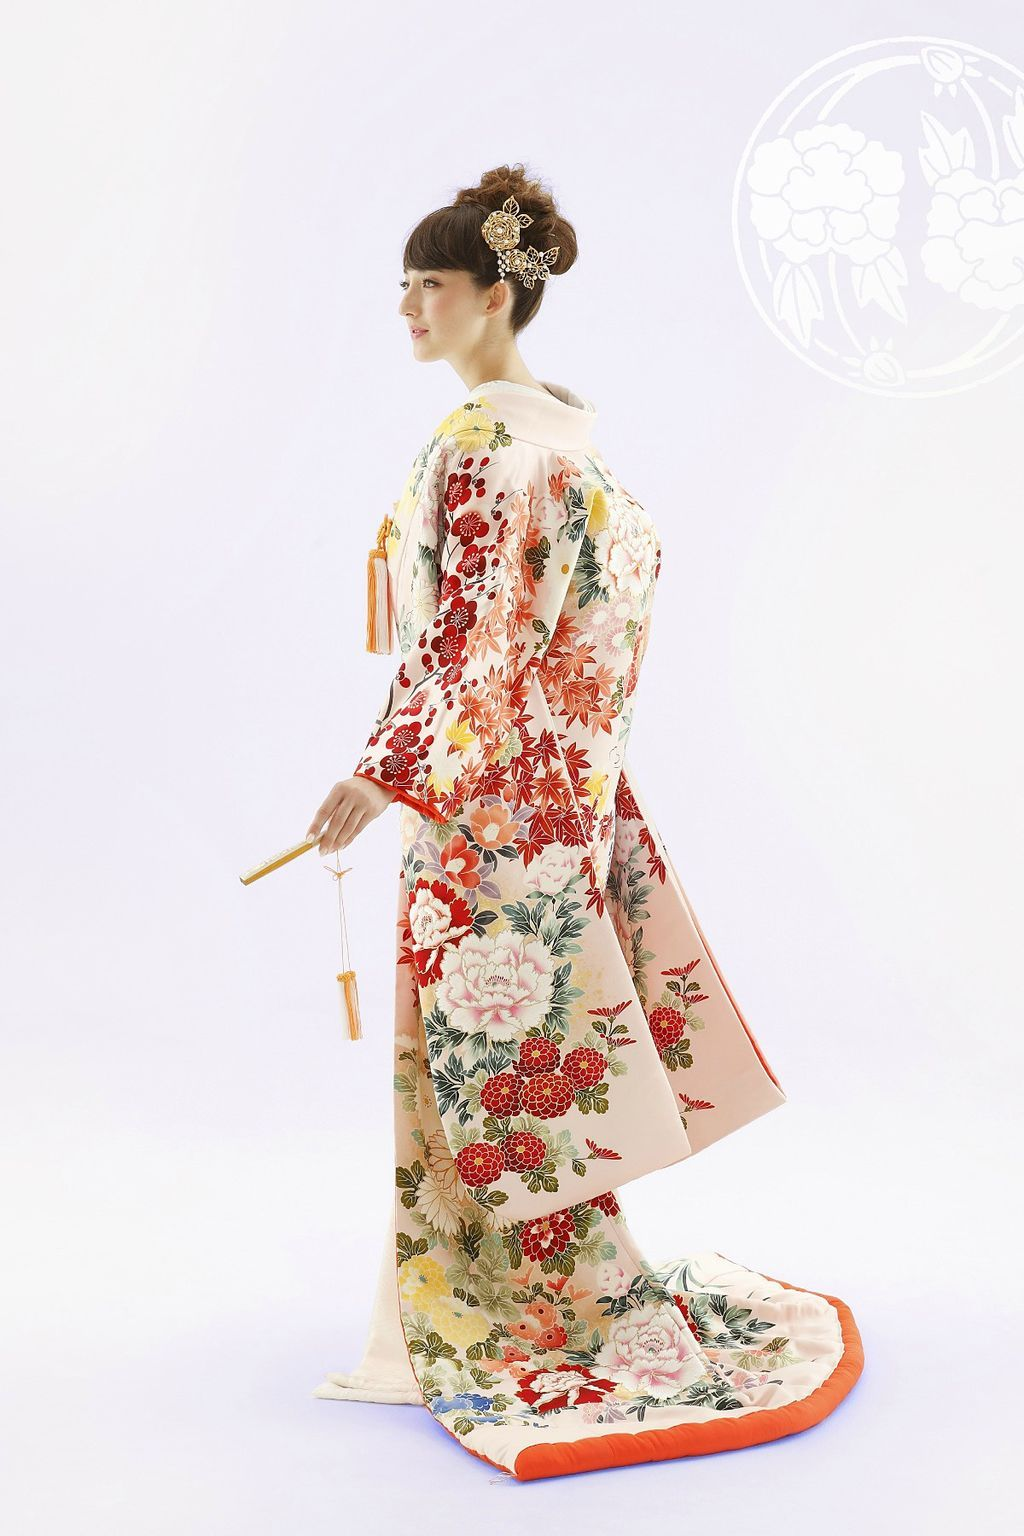 awesome 99 Unique Japanese Wedding Dress Ideas for Your Inspirations  https://viscawedding.com/2017/06/17/99-unique-japanese-wedding-dress-ideas-inspirations/